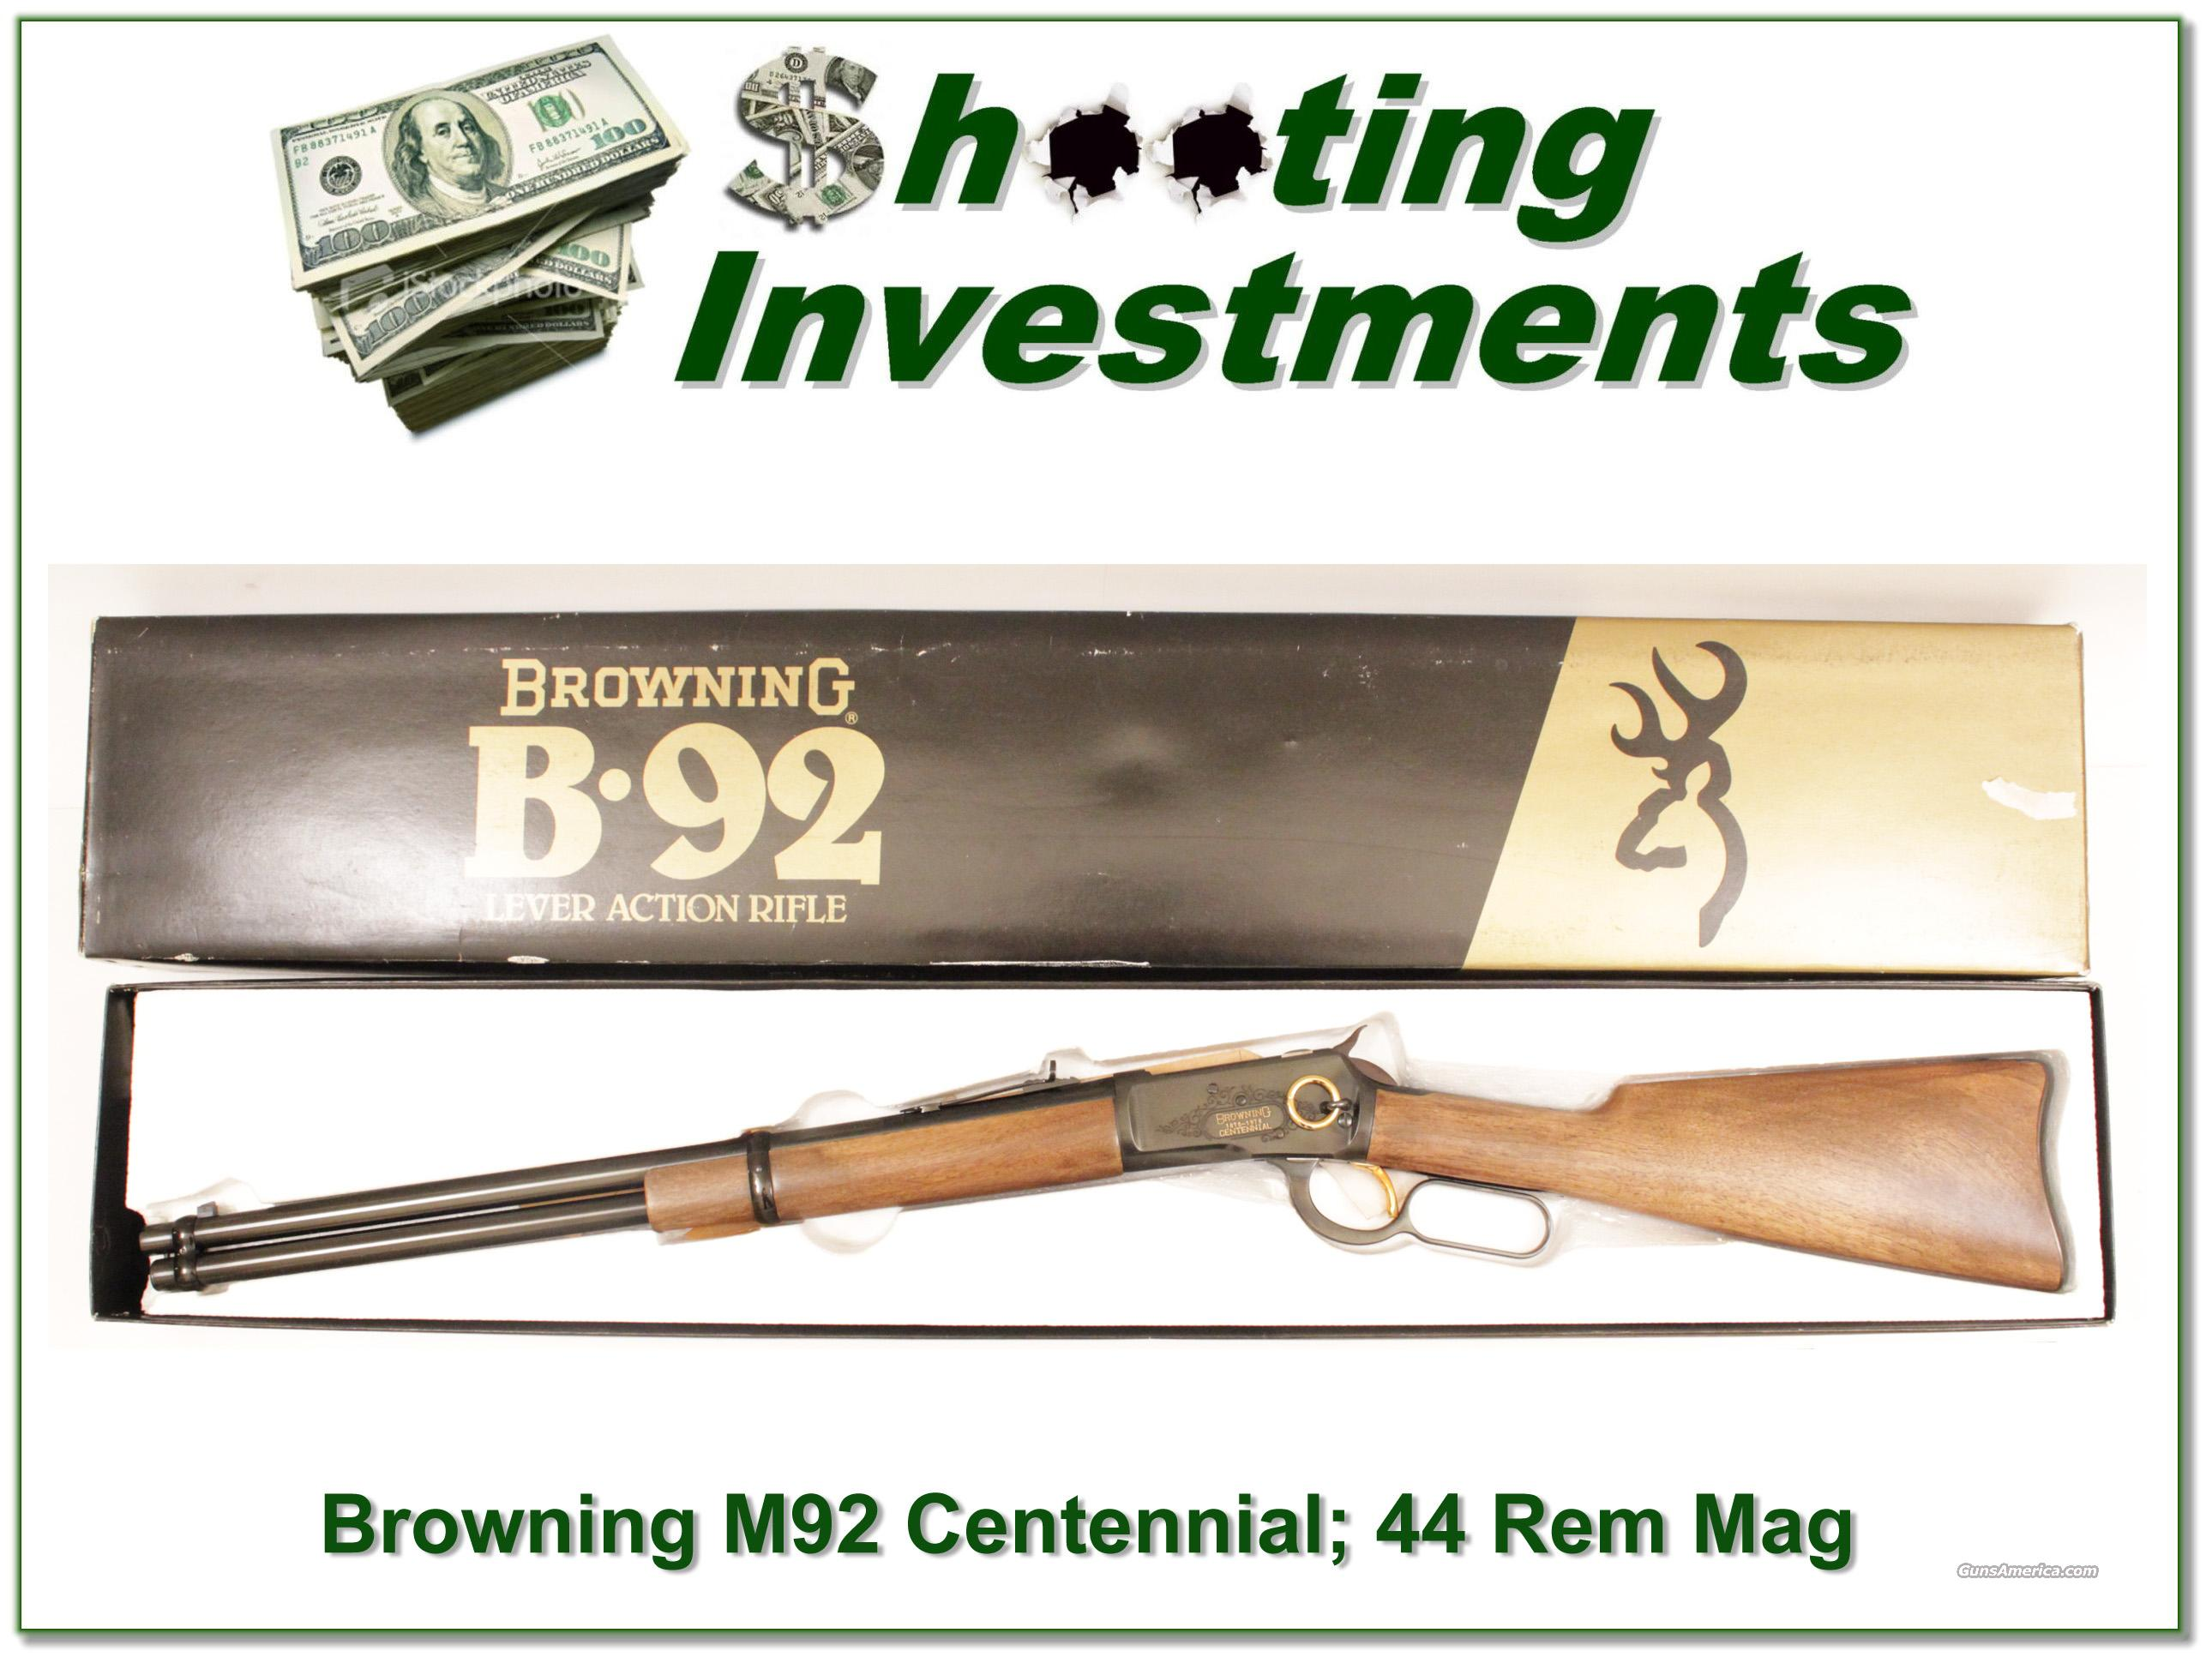 Browning Model 92 Centennial 44 rem mag NIB  Guns > Rifles > Browning Rifles > Lever Action